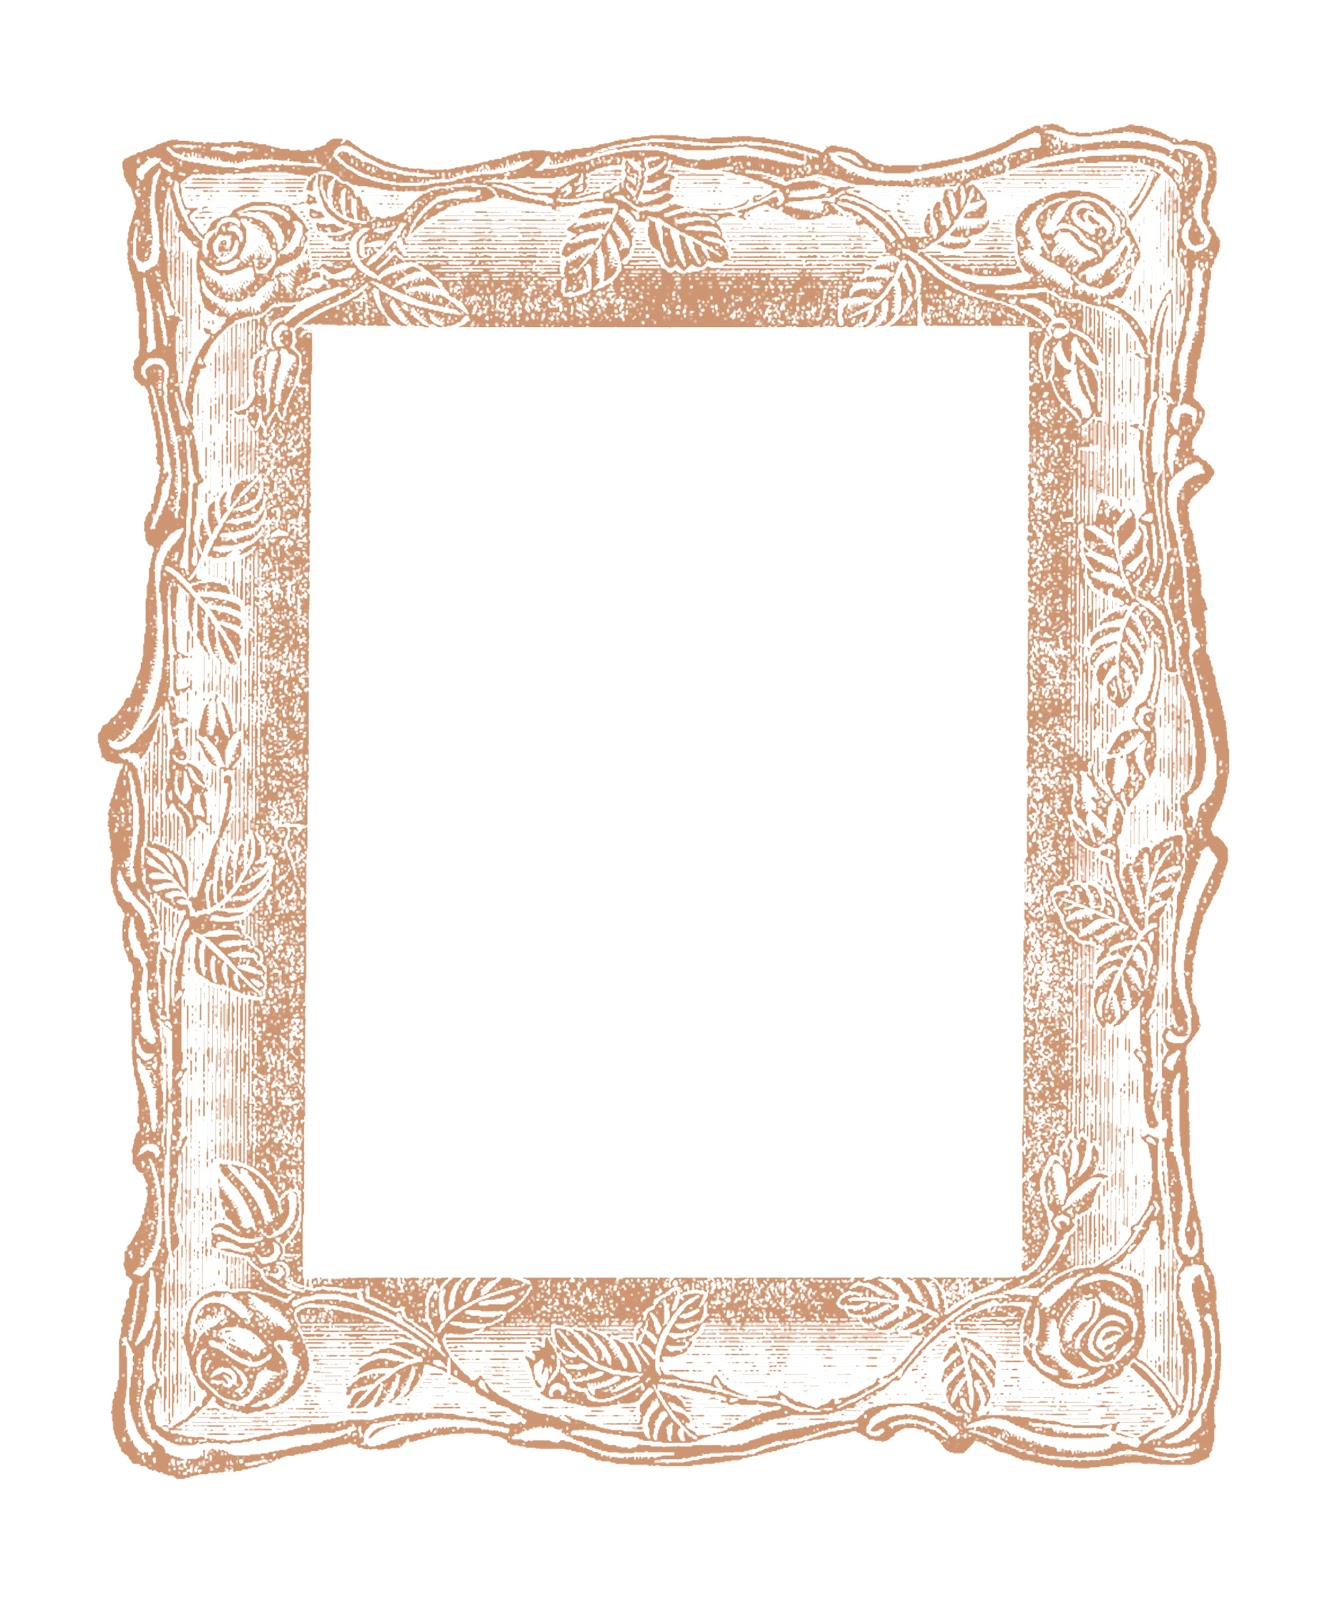 Antique images vintage graphic decorative square frame for How to make vintage frames